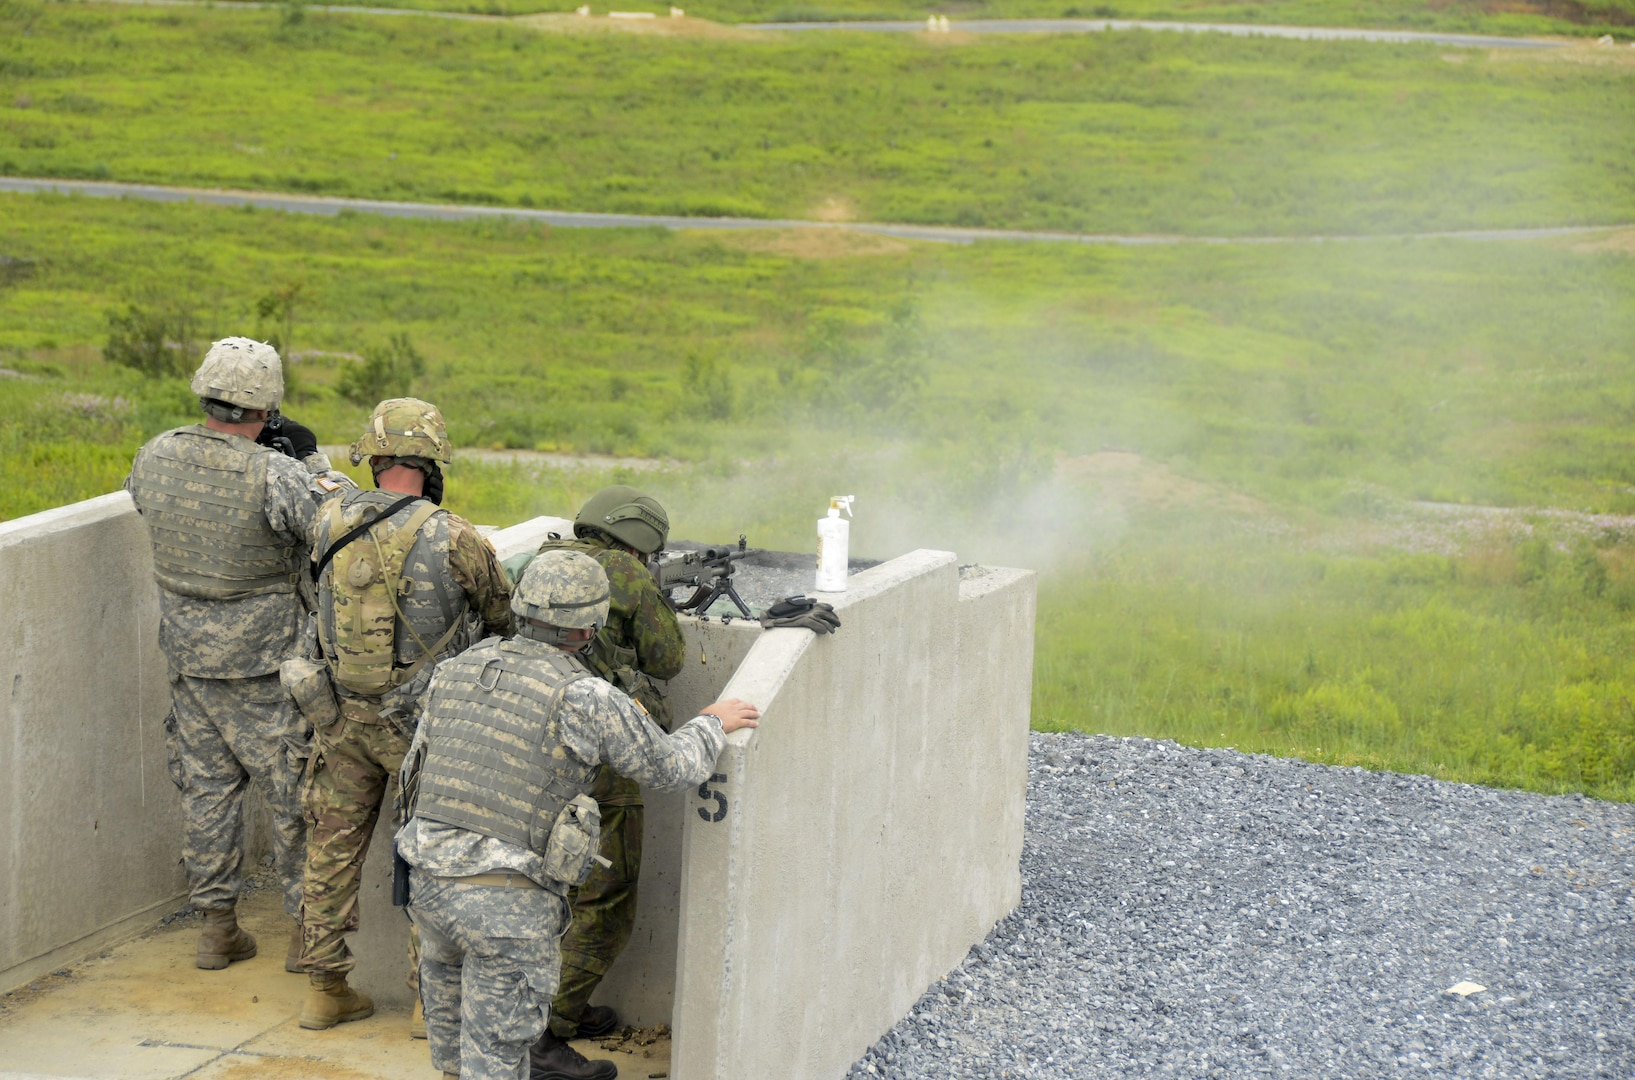 Lithuanian reserve component soldiers train with Soldiers from the Pennsylvania National Guard's 28th Infantry Division June 16, 2017, at Fort Indiantown Gap during the annual platoon exchange, part of the Pennsylvania National Guard's State Partnership Program.